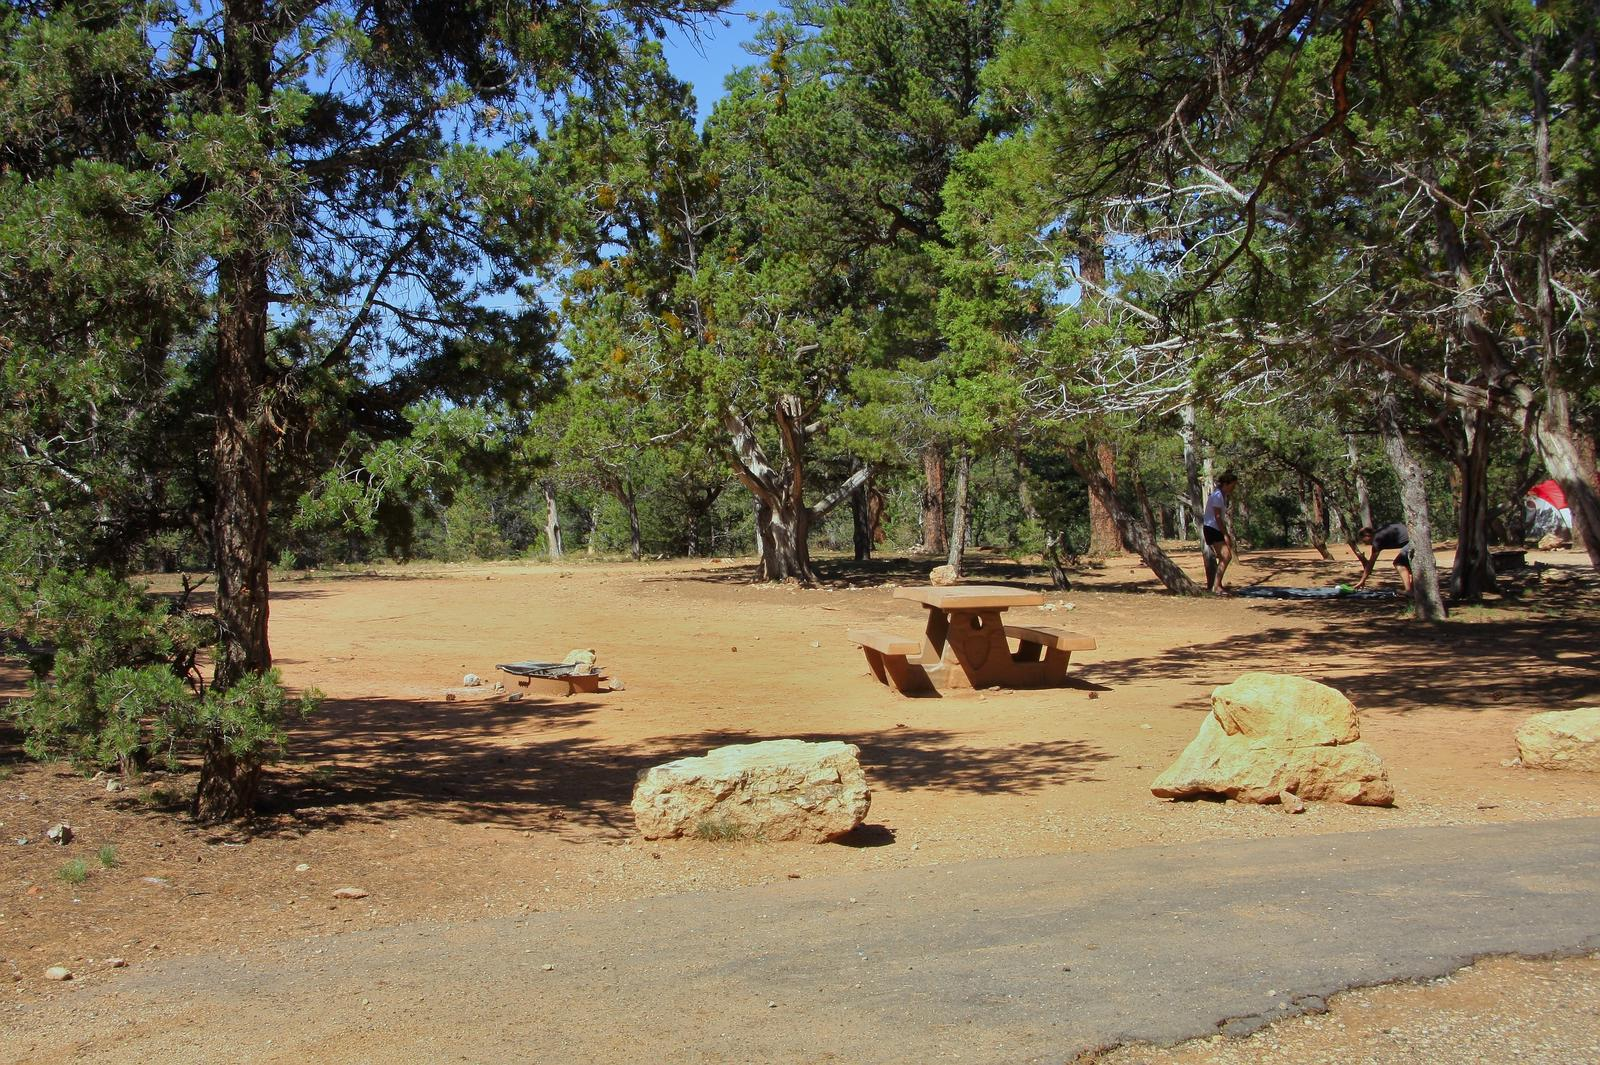 Picnic table, fire pit, and park spot, Mather CampgroundPicnic table, fire pit, and park spot for Oak Loop 263, Mather Campground